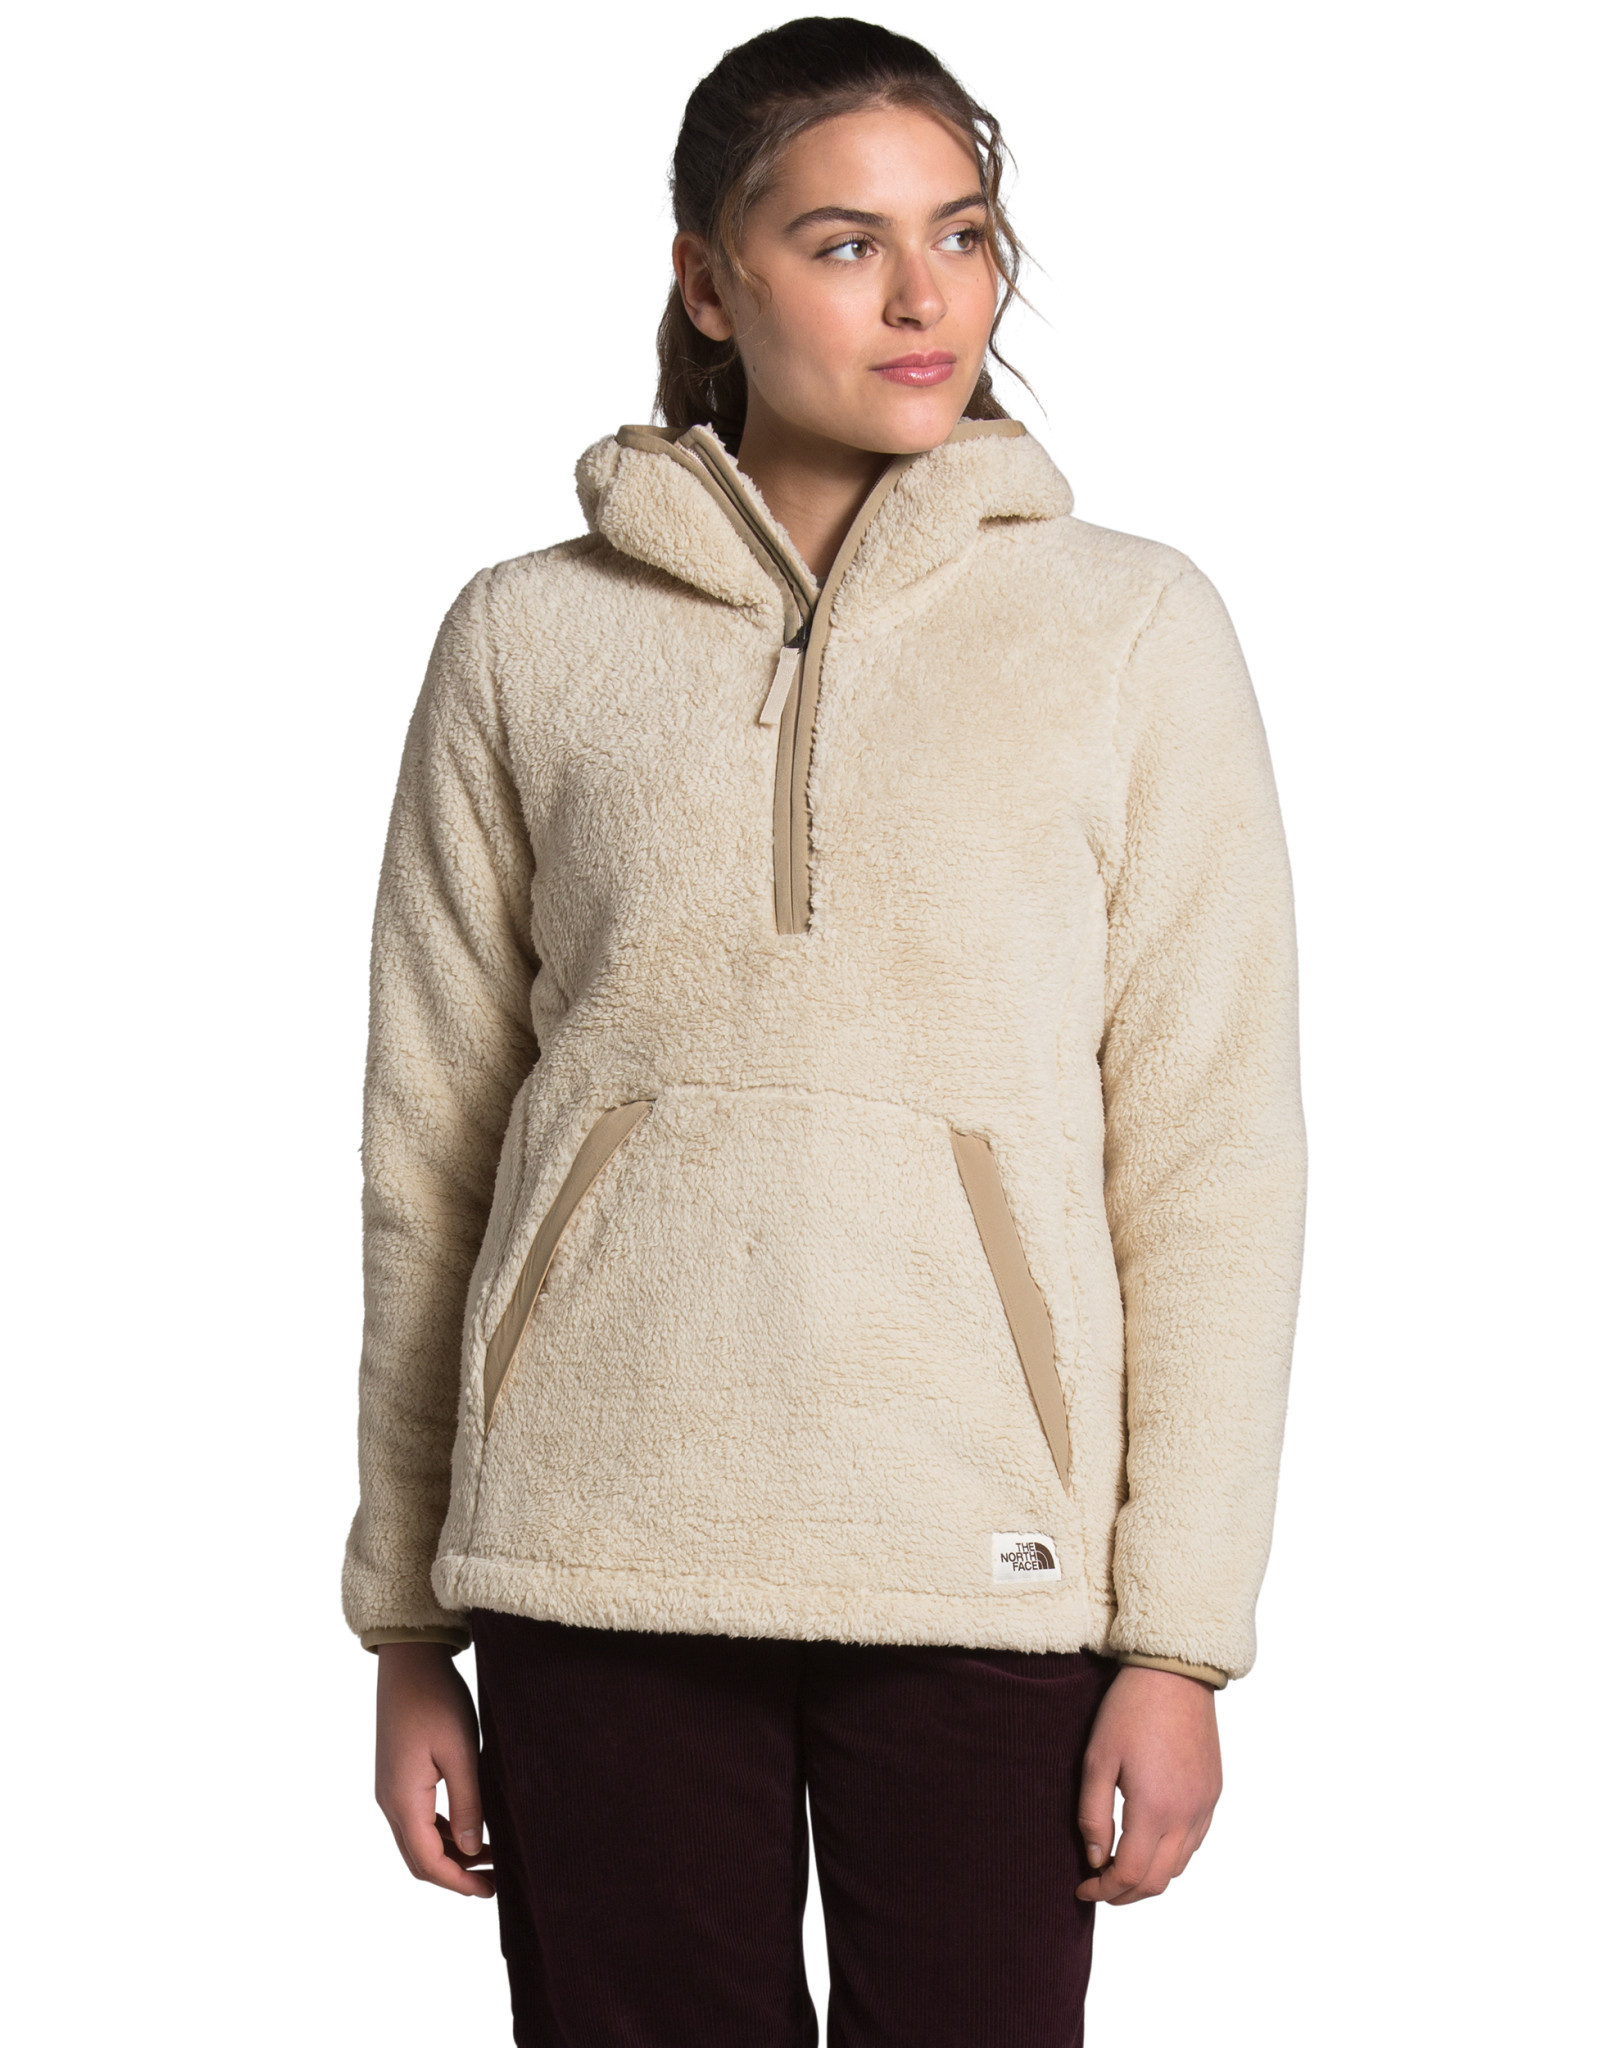 The North Face The North Face Women's Campshire Pullover Hoodie 2.0 -S2021